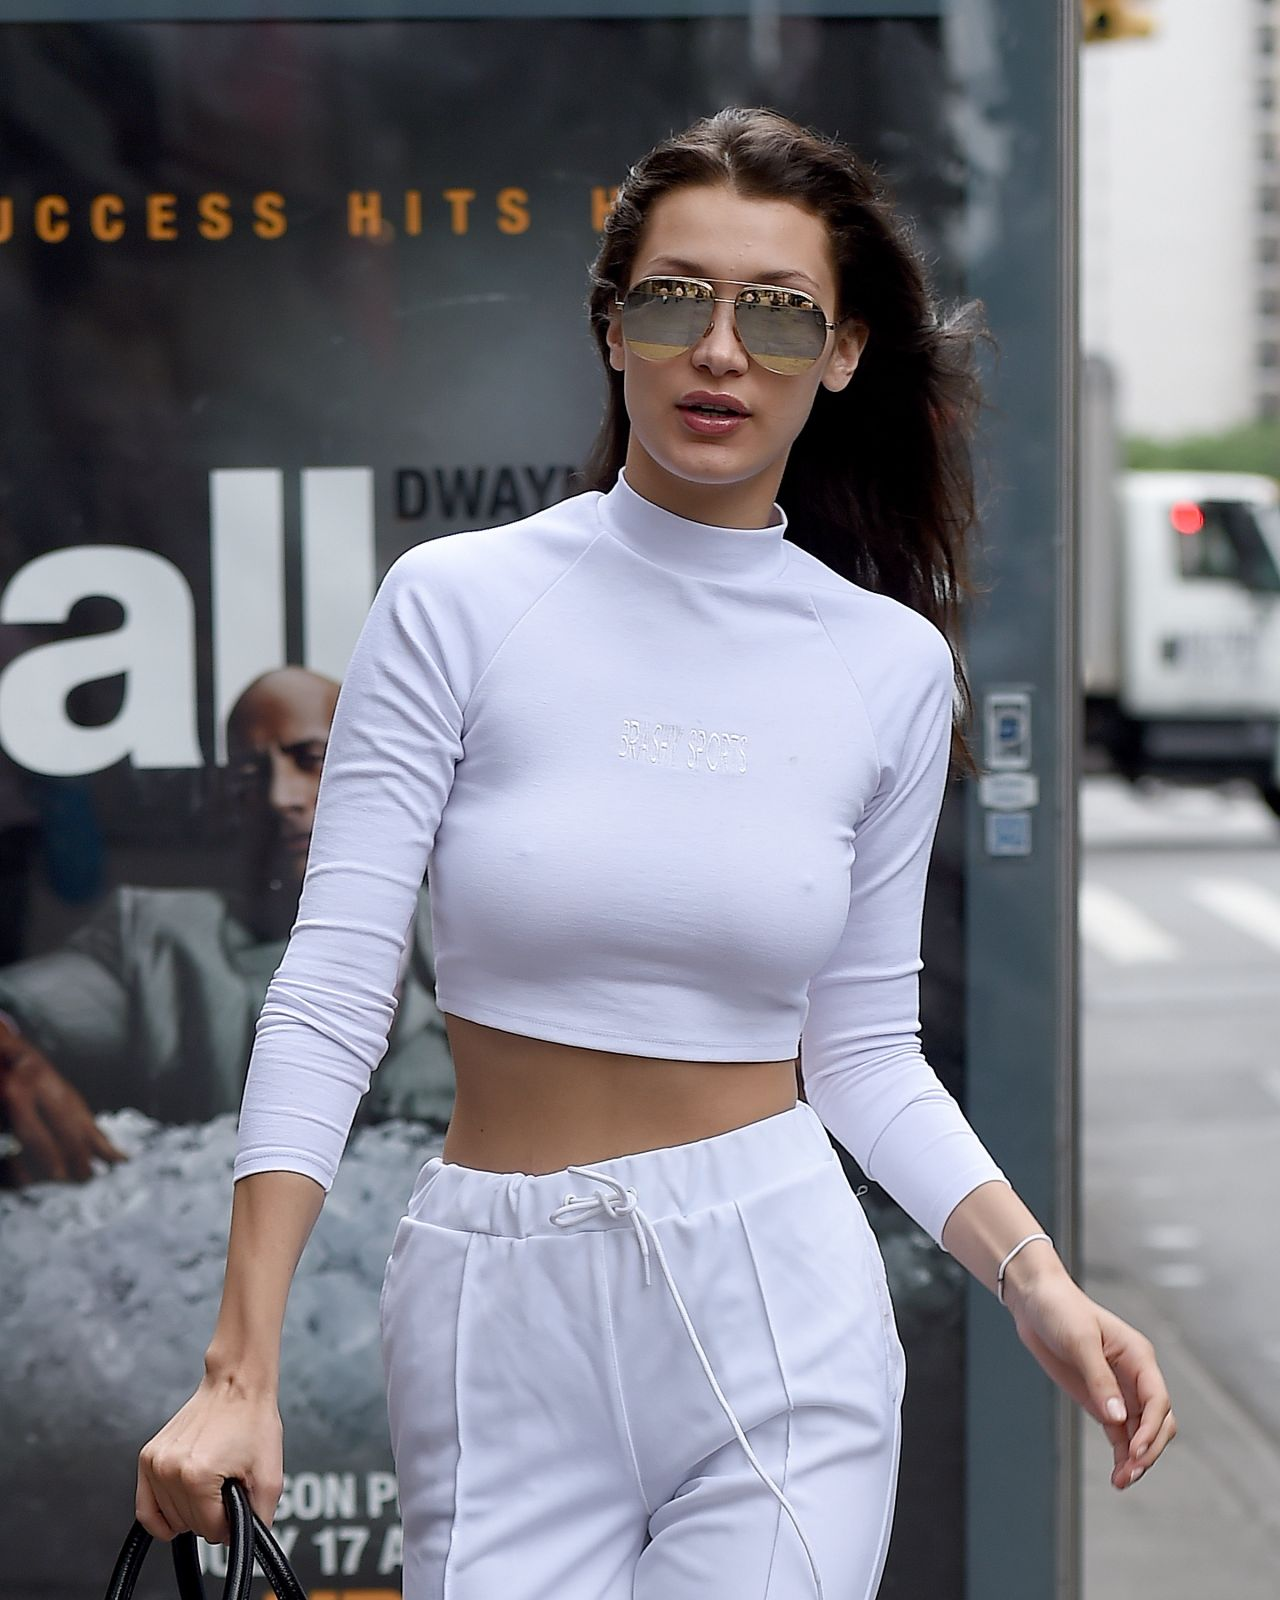 Bella Hadid Casual Outfit - Nyc 712016-6433